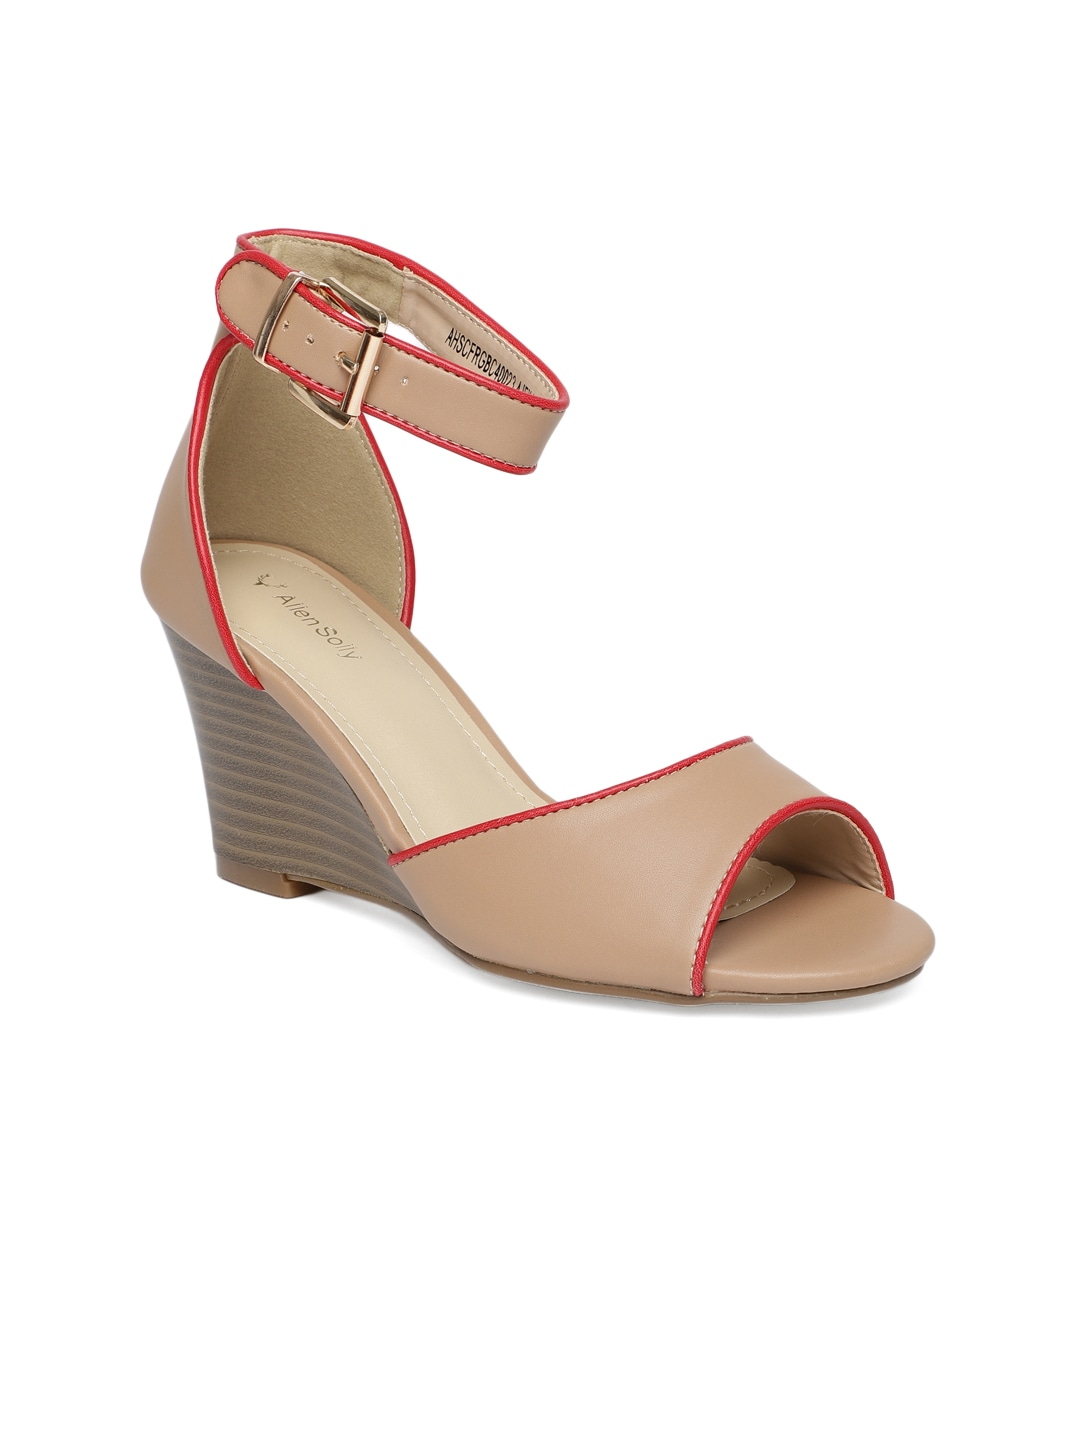 ca2c24ed2 Womens Wedges - Buy Wedges for Women Online at Best Price